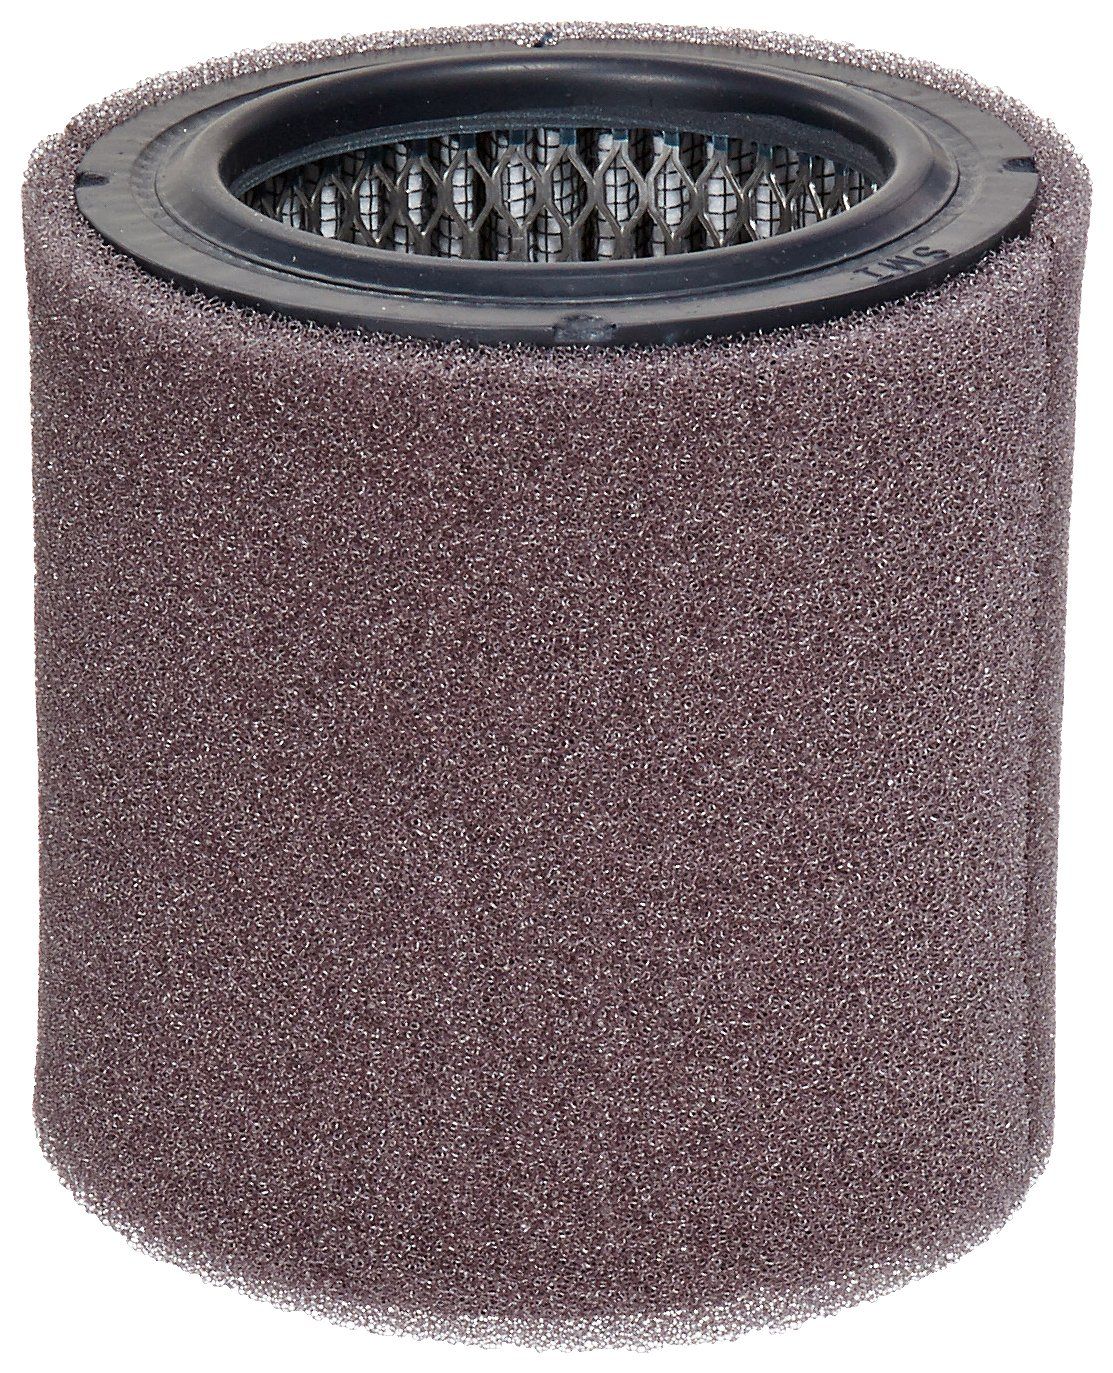 Solberg 19P Polyester Filter Cartridge with Prefilter for Compressor, 4-3/4'' Height, 3'' Inner Diameter, 4-3/8'' Outer Diameter, 100 SCFM, Made in the USA by Solberg